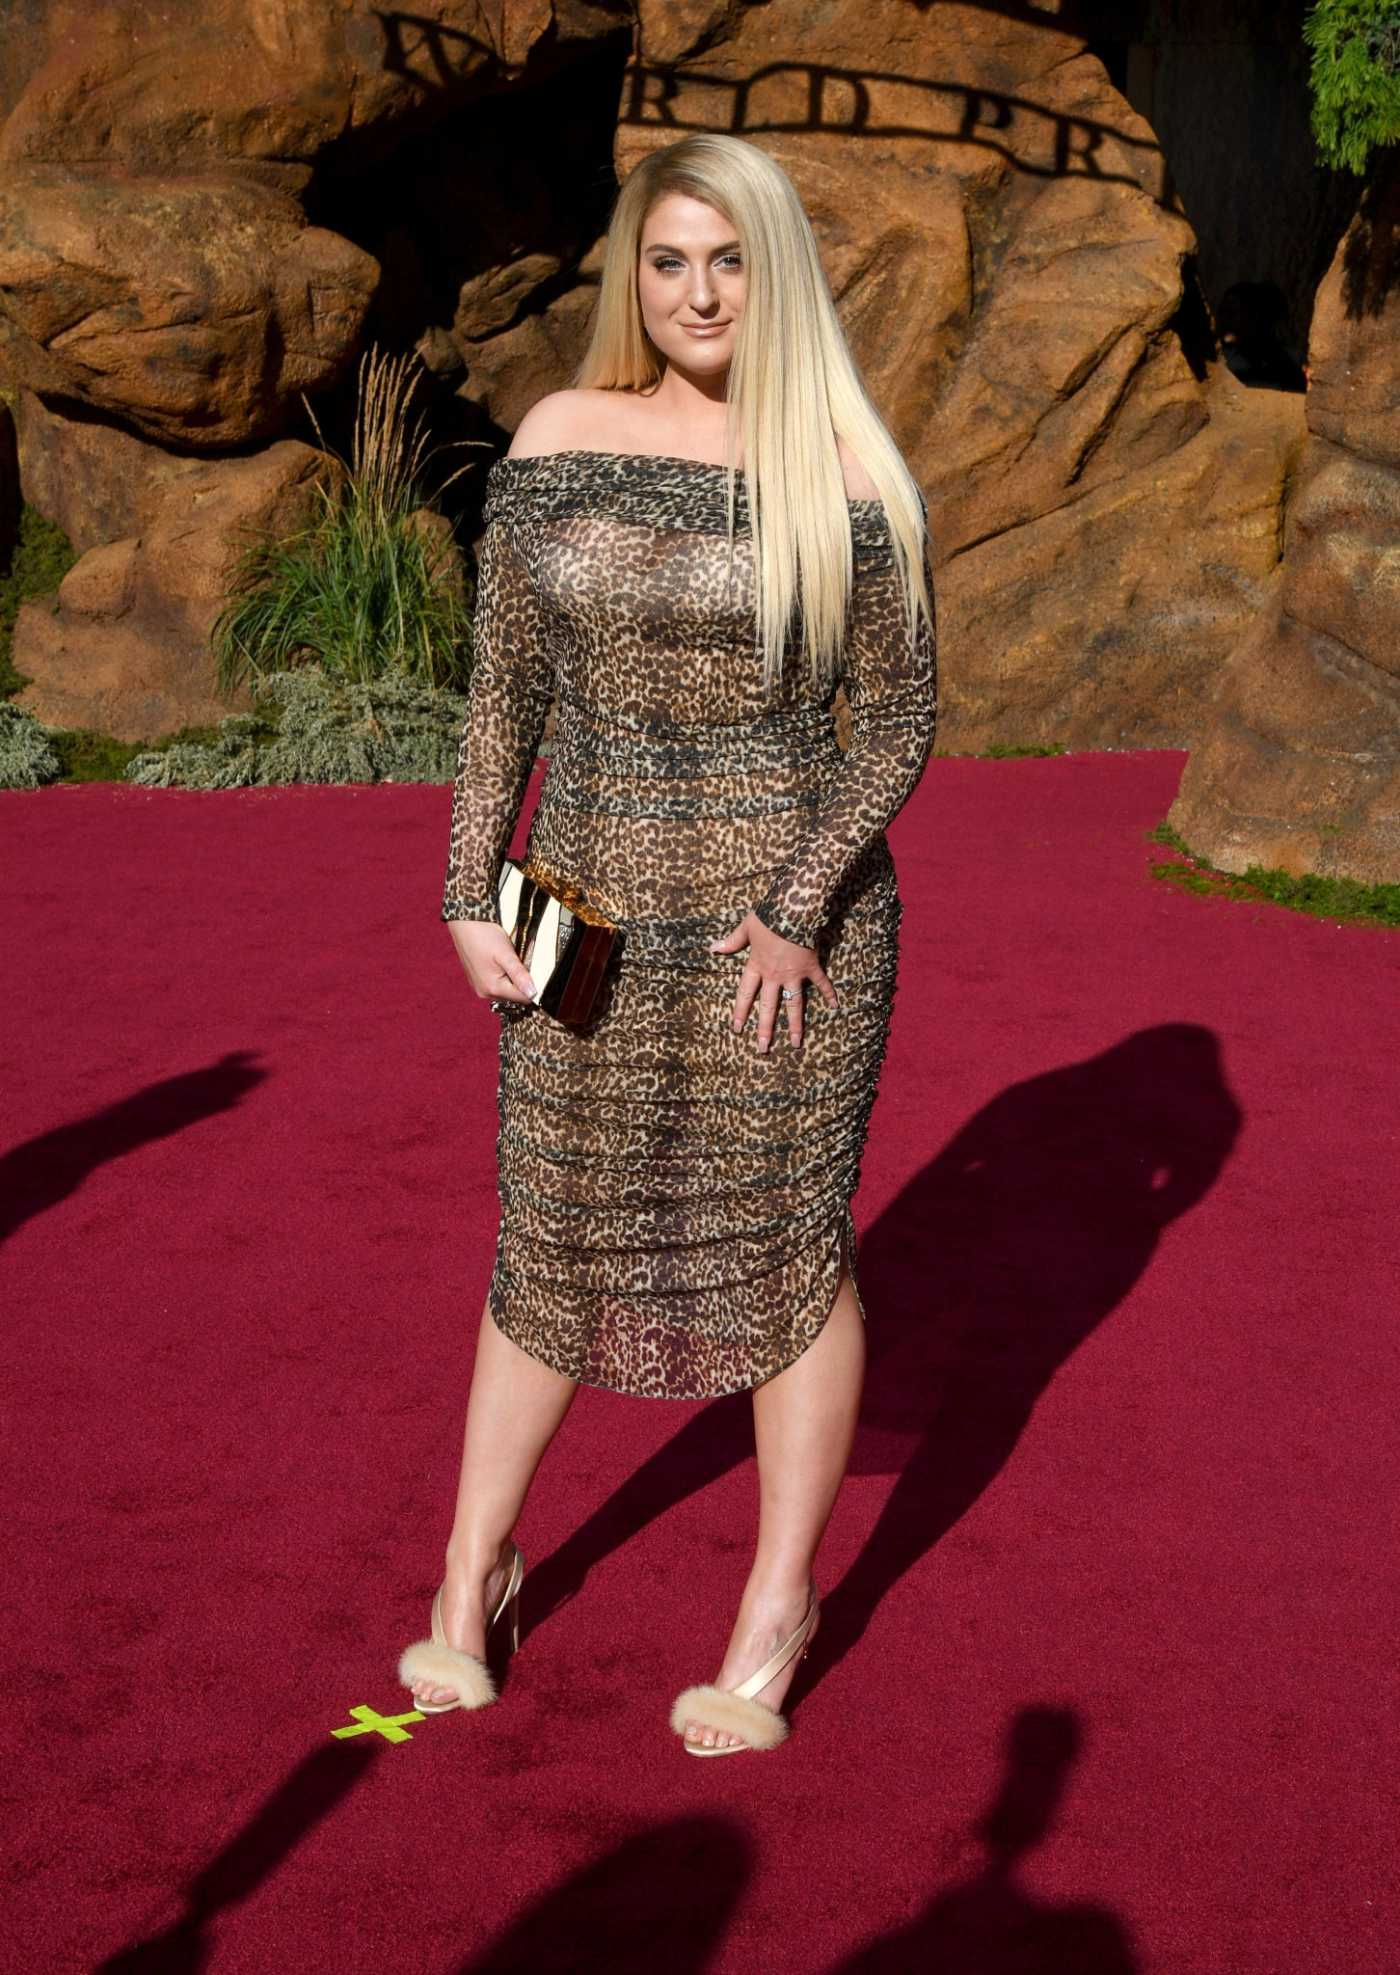 Meghan Trainor Attends The Lion King Premiere at Dolby Theatre in Hollywood 07/09/2019